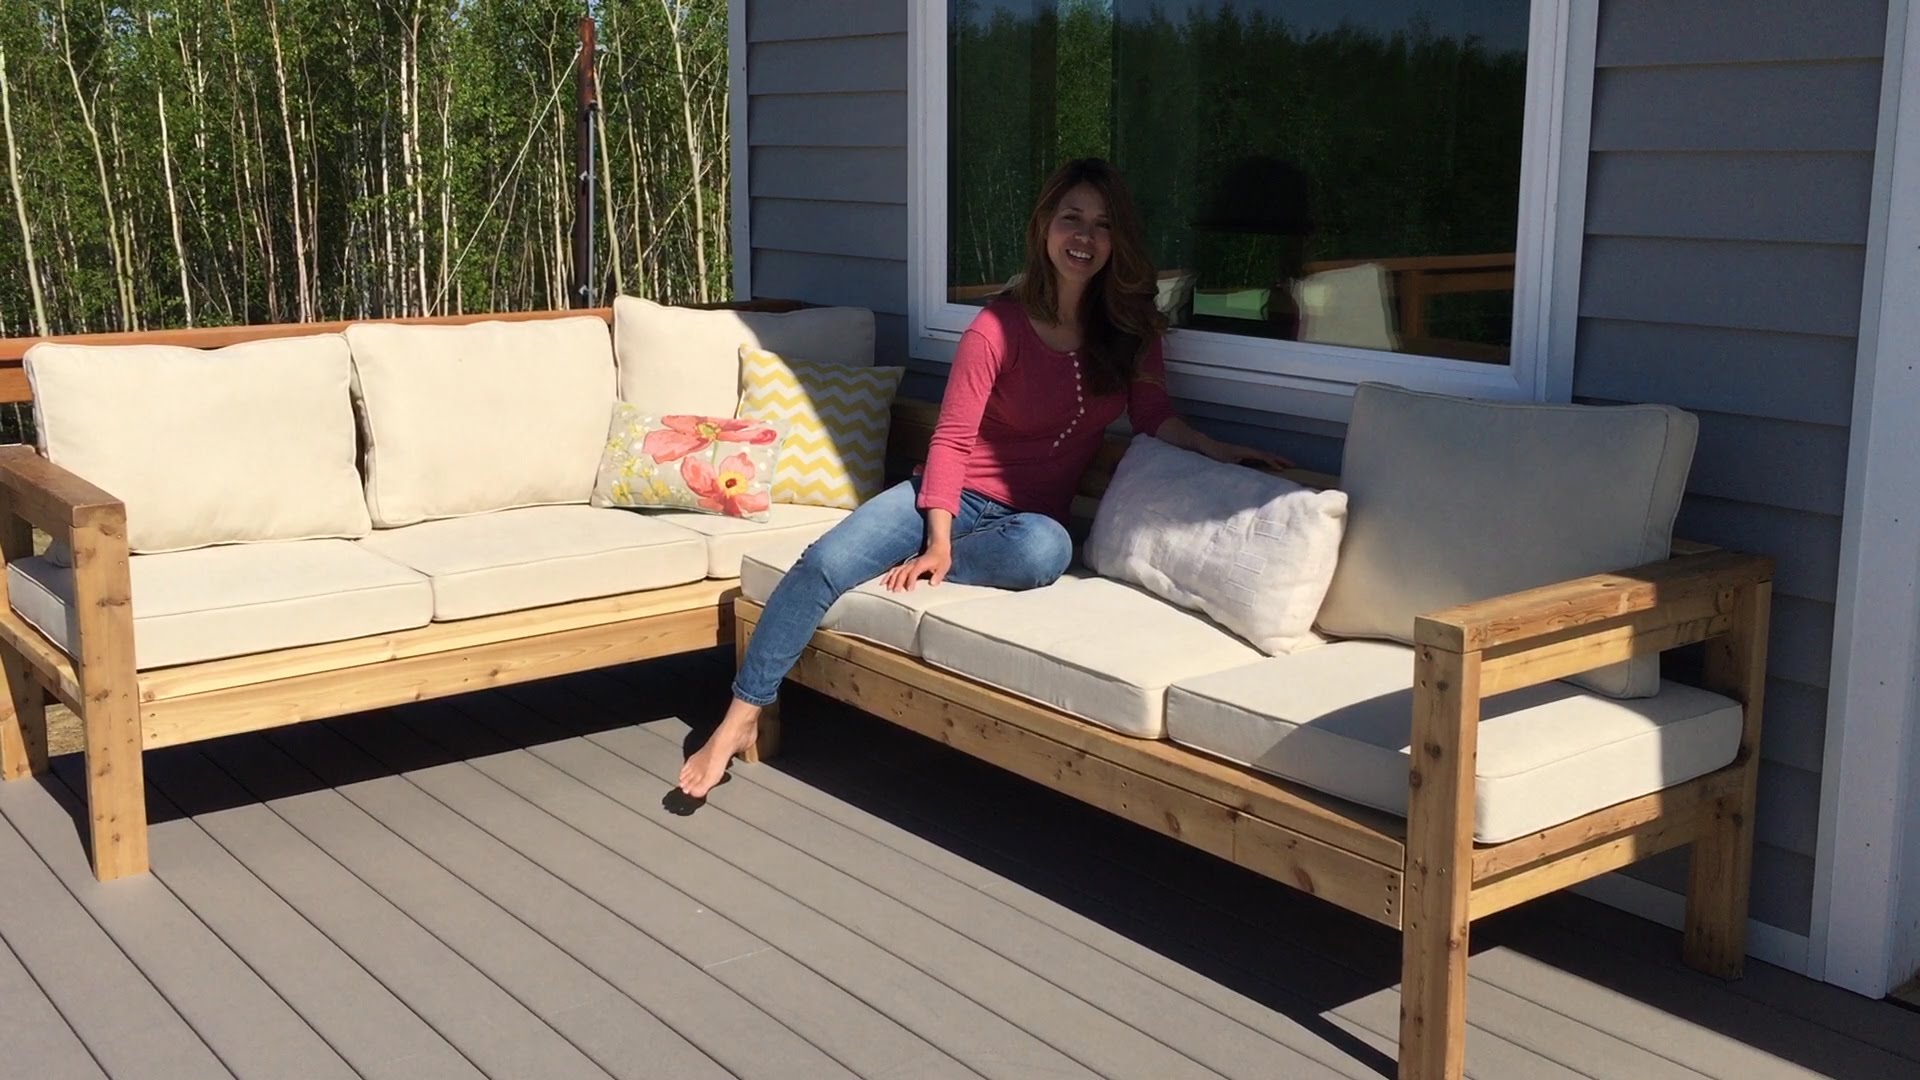 diy outdoor furniture how to build a 2x4 outdoor sectional tutorial - youtube CMCMGNF